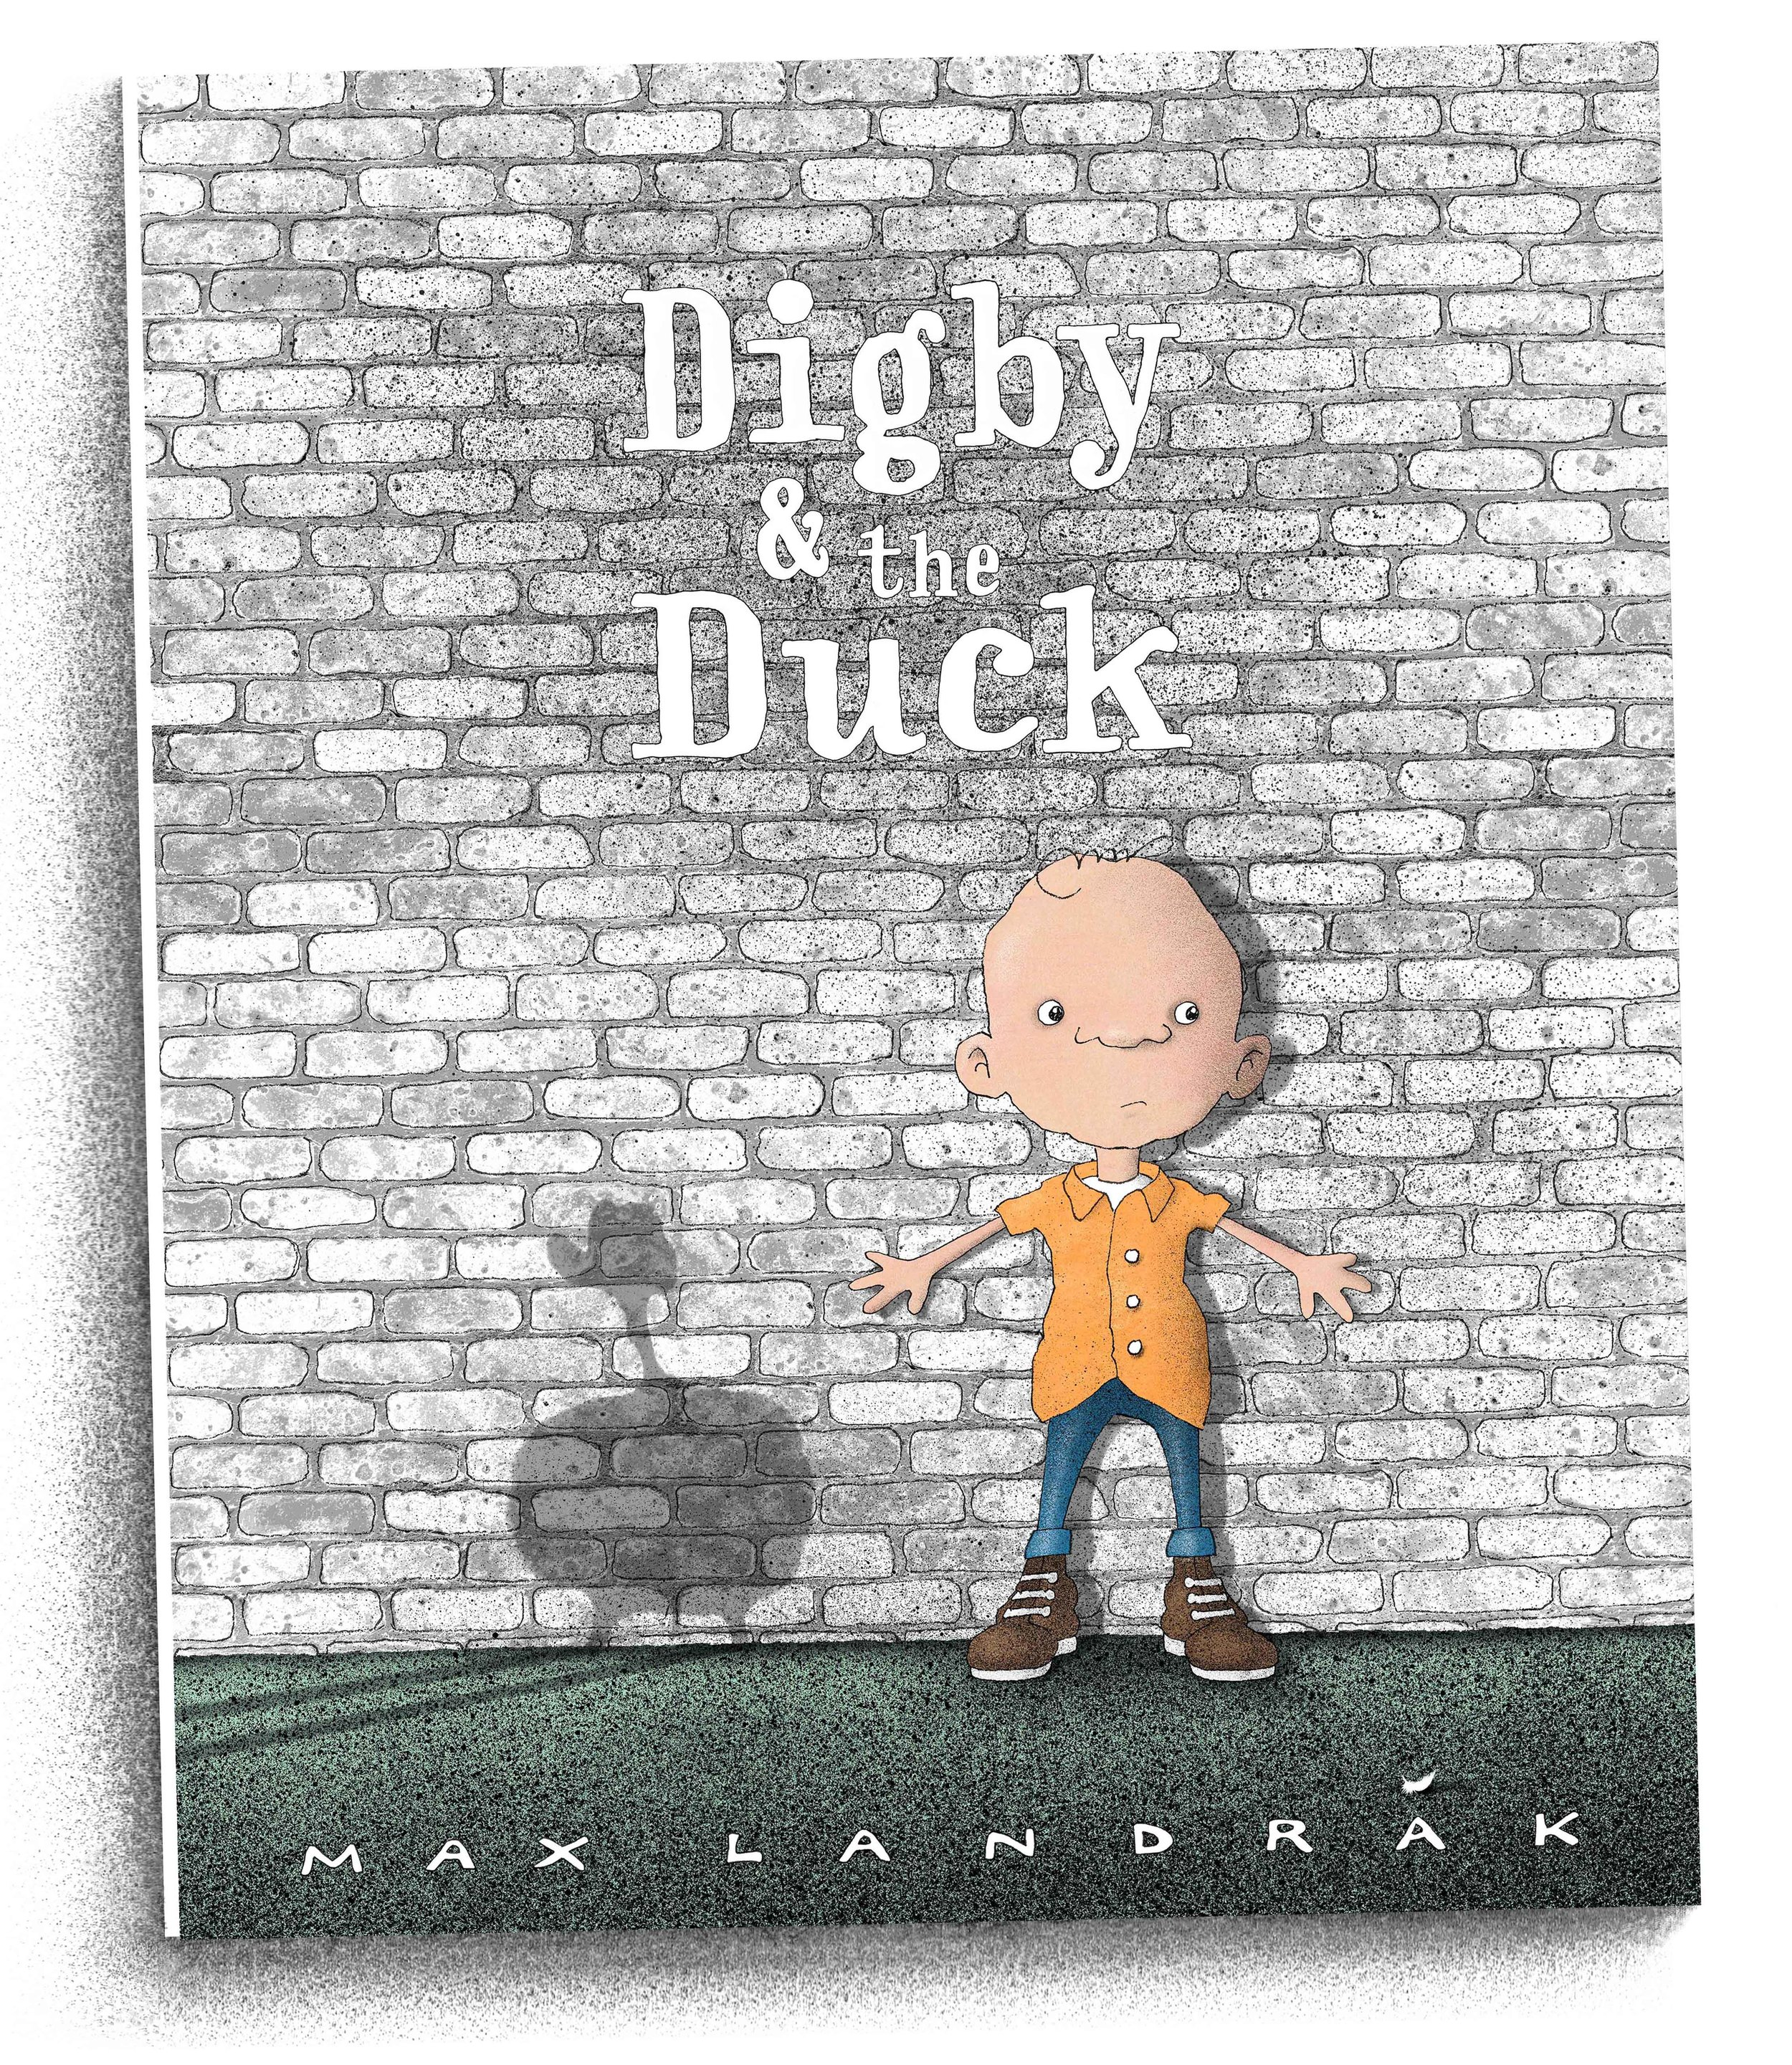 Digby & the Duck - If it walks like a duck, and talks like a duck, it probably is a duck.Or is it?Digby is worried something may be spying on him.He tries to run. He tries to hide. He tries everything, but nothing works.In the end, there's only one thing left to do; Digby has to confront his fear.